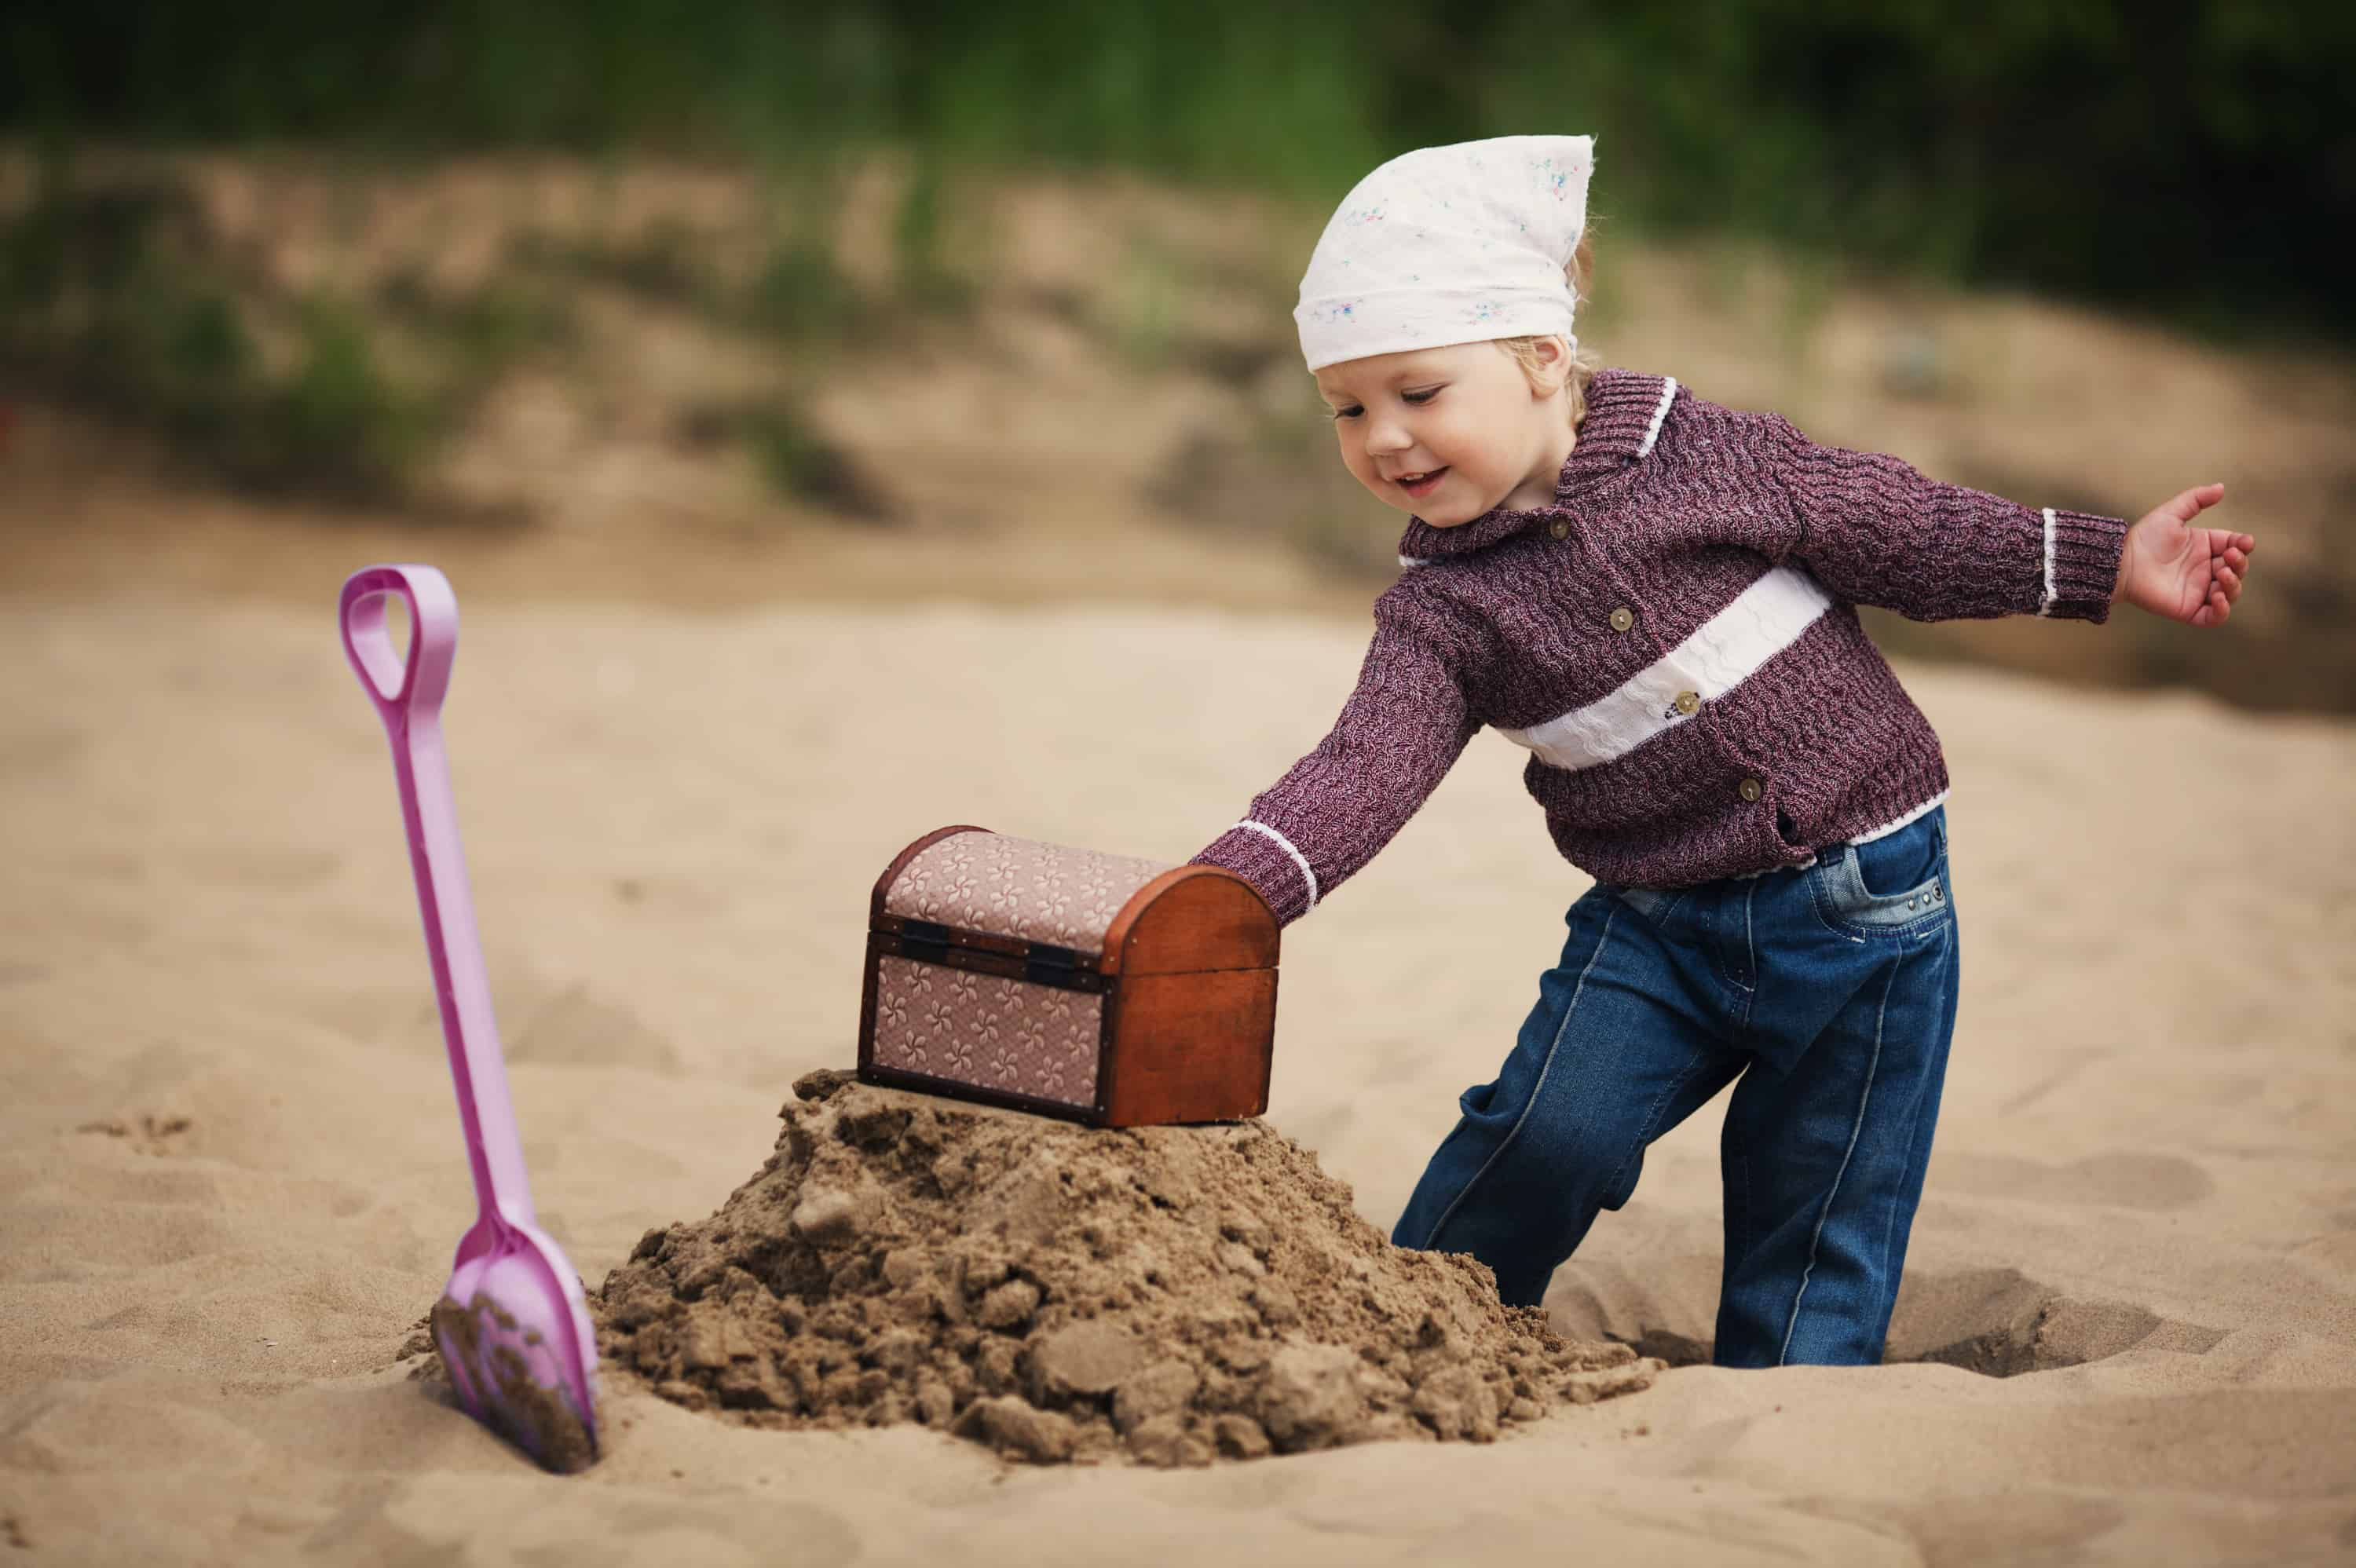 Little girl digging on the beach searching for unclaimed money.